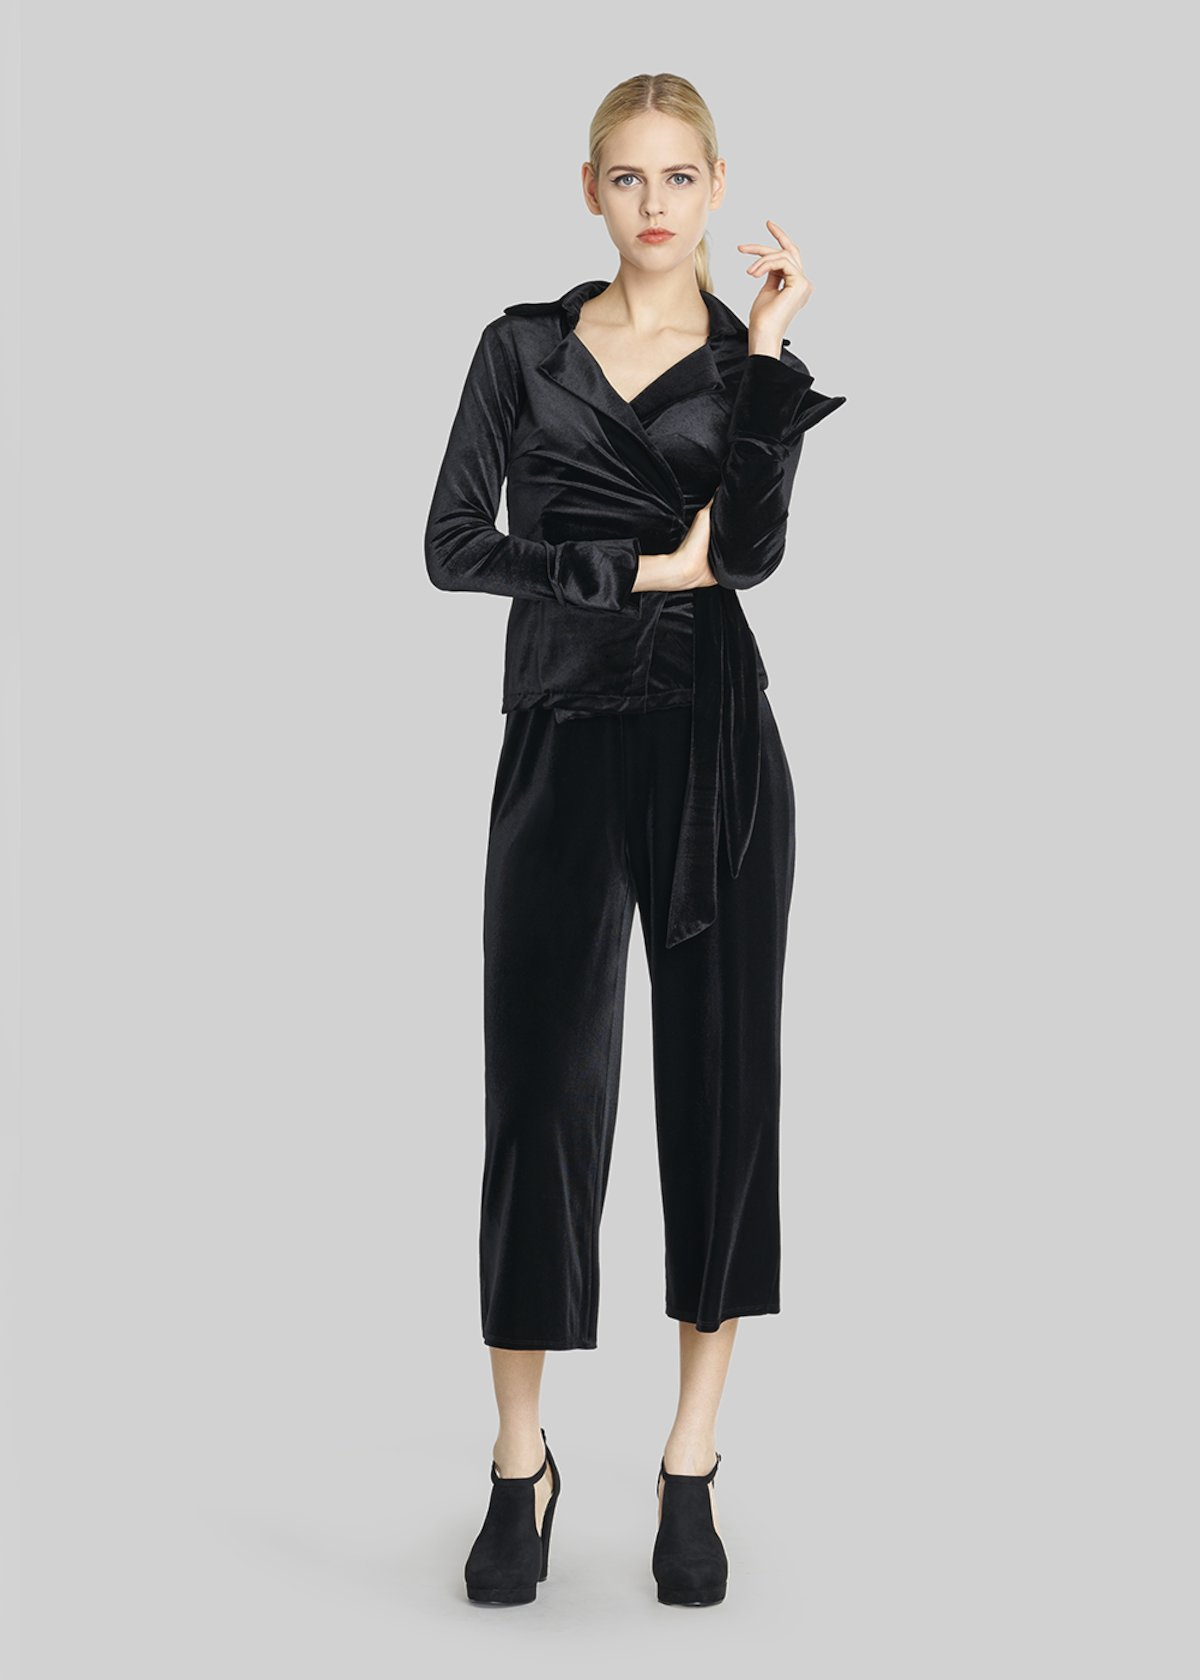 Pico 5 Short palazzo velvet trousers - Black - Woman - Category image